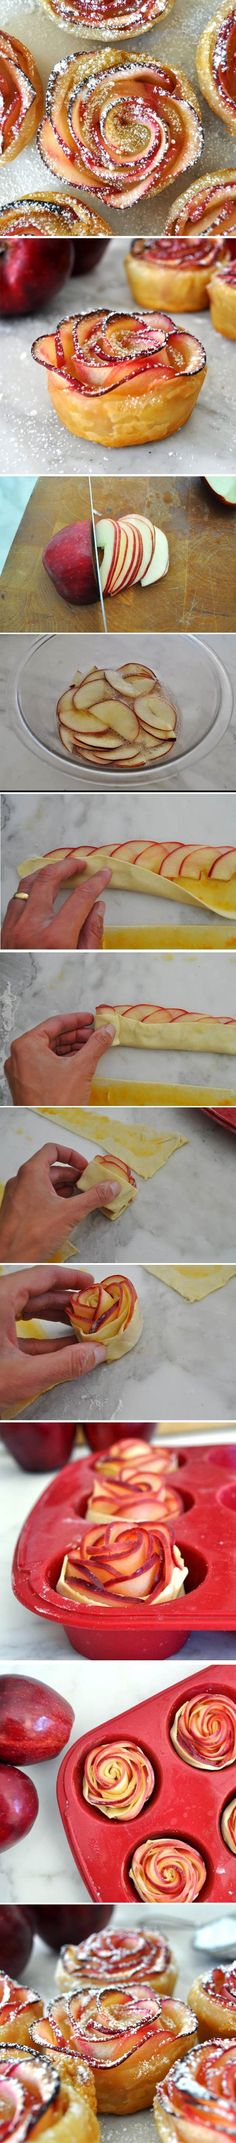 How to Make Apple Roses Beautiful and Delicious By Manuela- Looks yummy! Just Desserts, Delicious Desserts, Dessert Recipes, Yummy Food, Apple Recipes, Sweet Recipes, Creative Food, Love Food, Food To Make